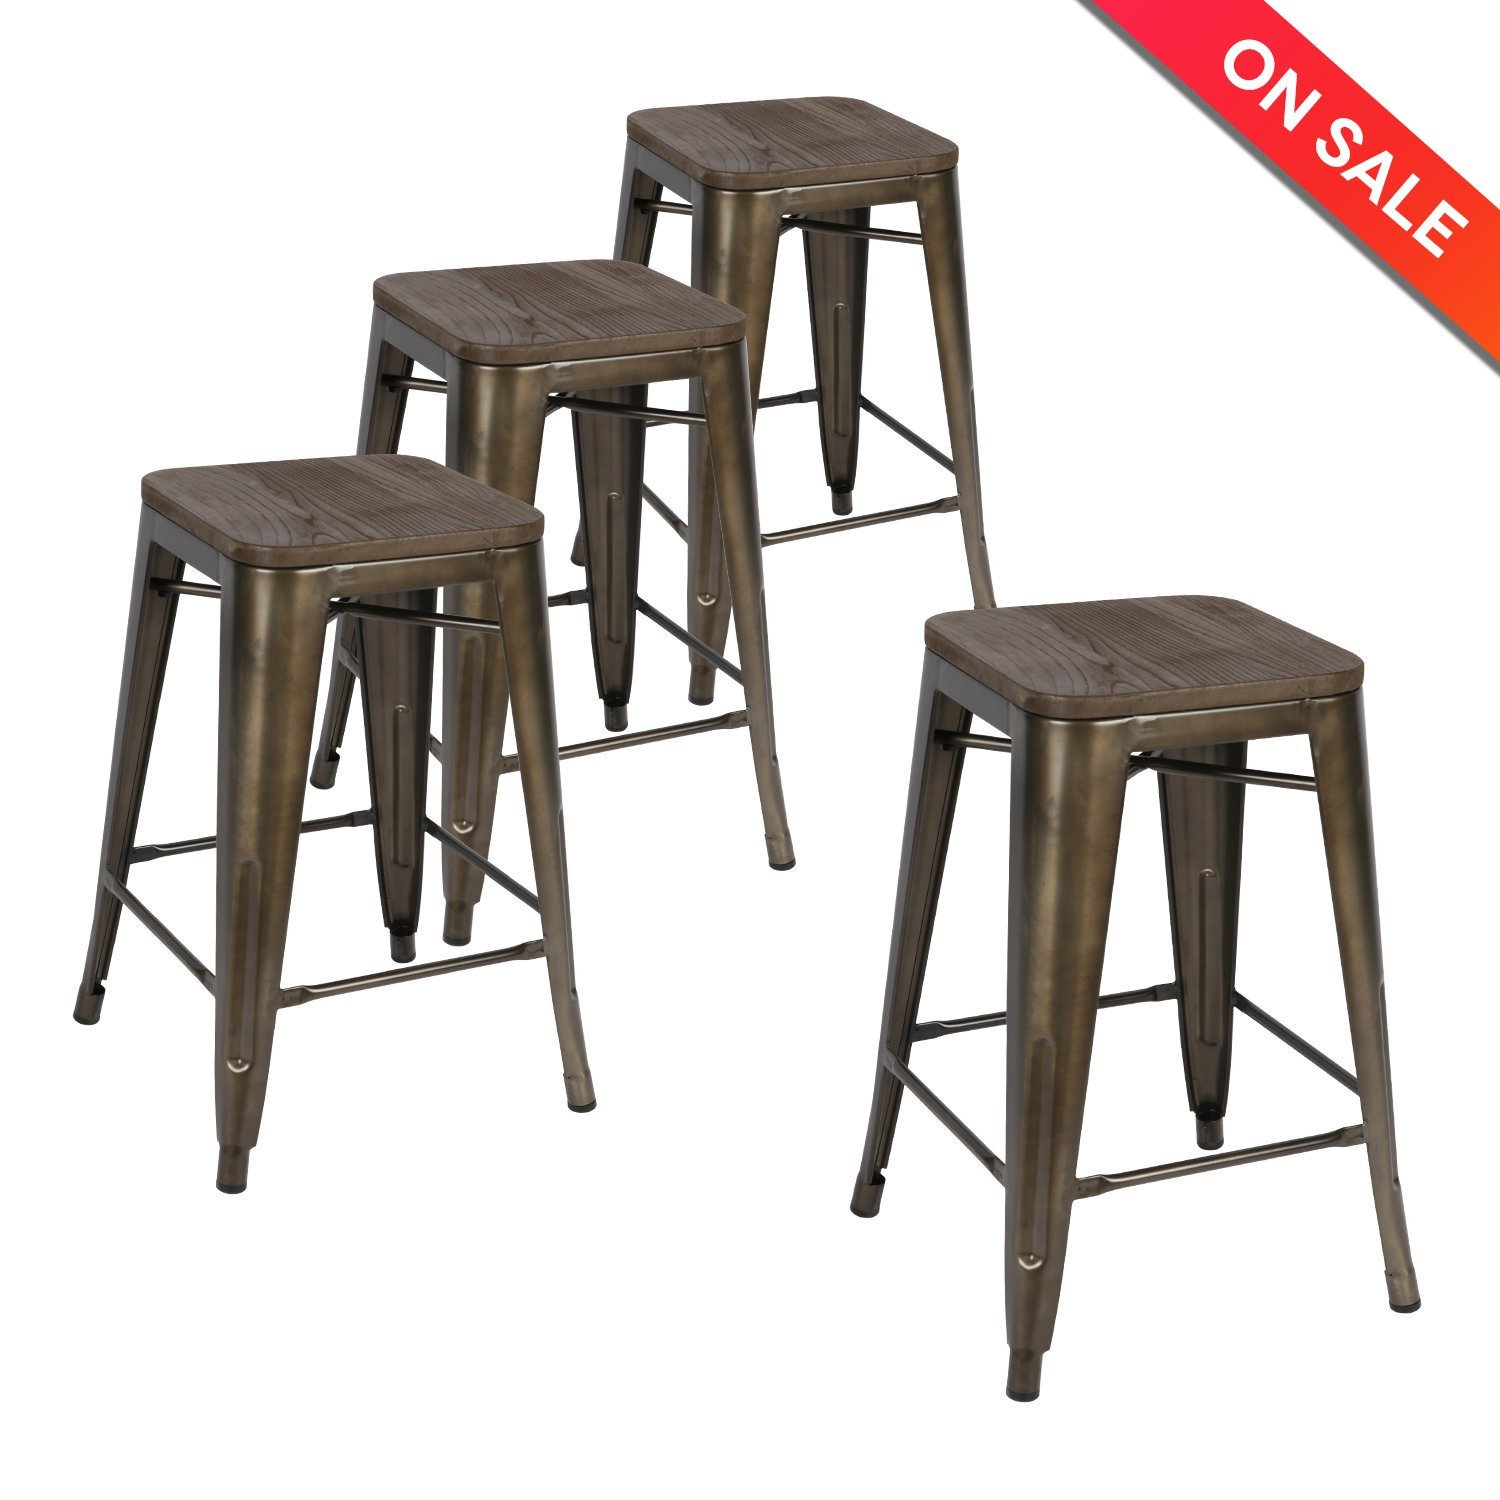 Lch 24 Inch Patio Metal Industrial Bar Stools Set Of 4 Indoor